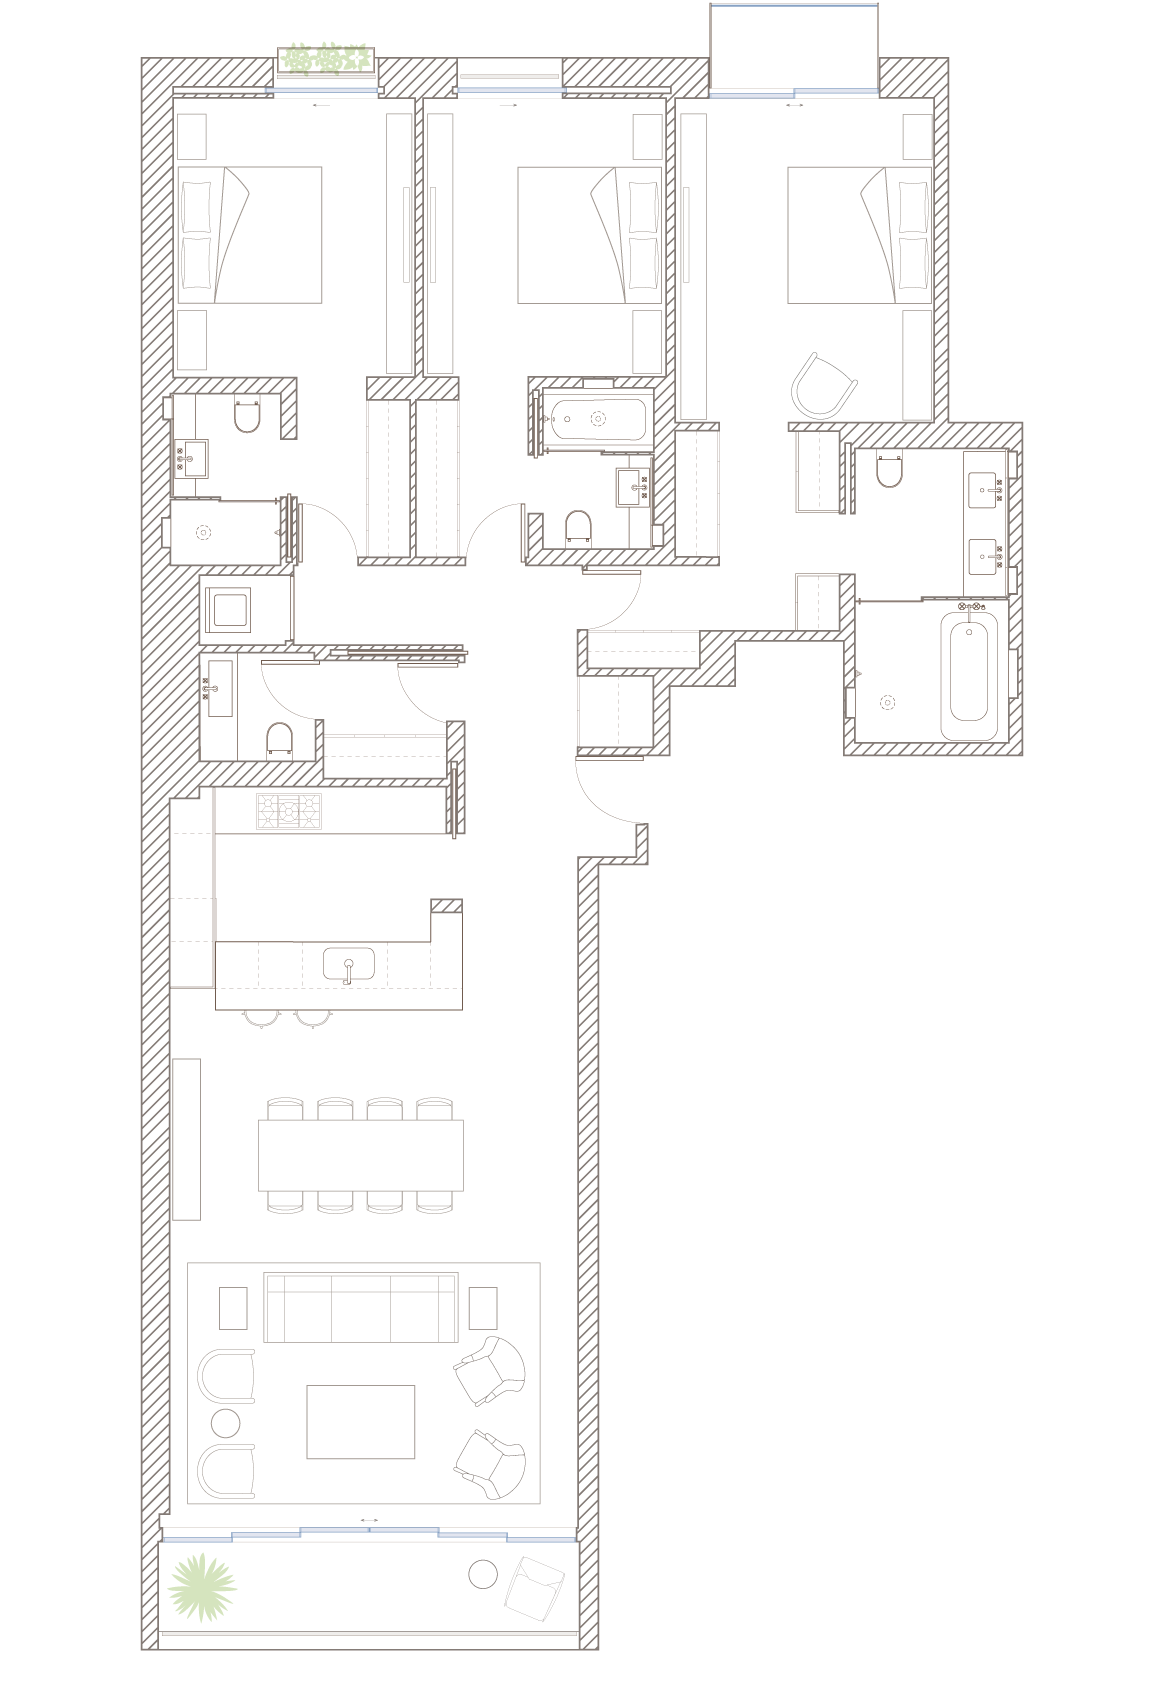 Norte: Floorplan 4D